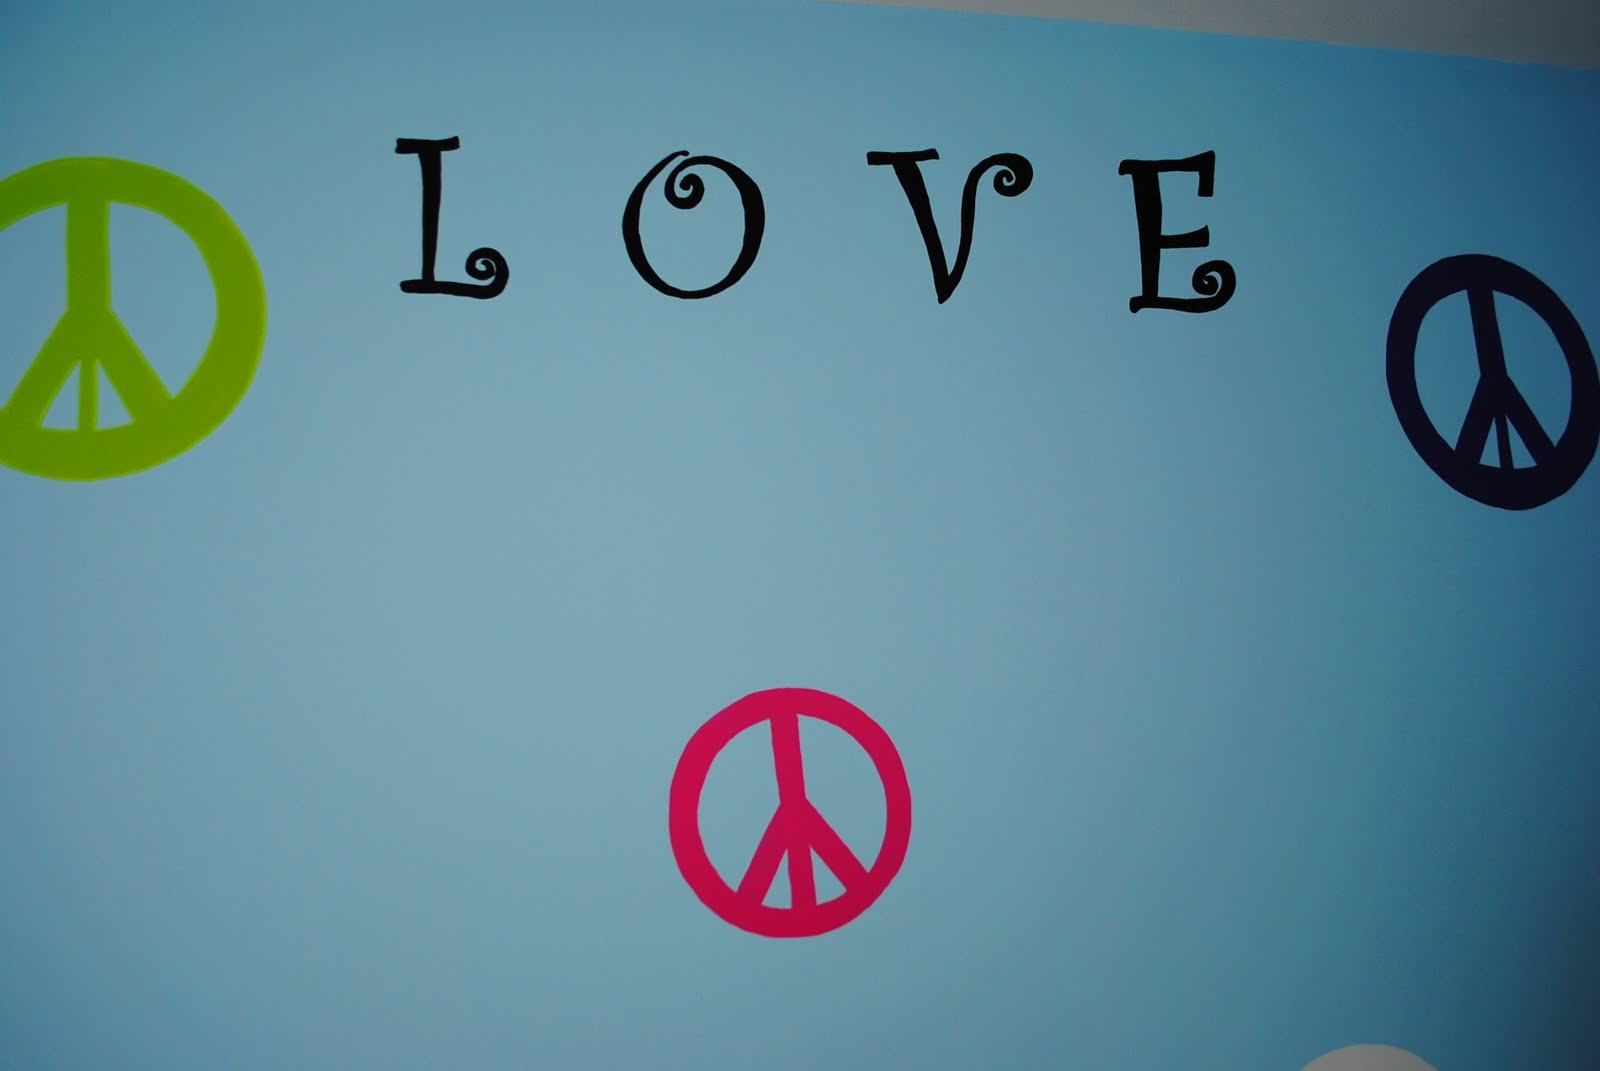 We painted the peace signs in with green, purple, pink & white, while the words were done in black.